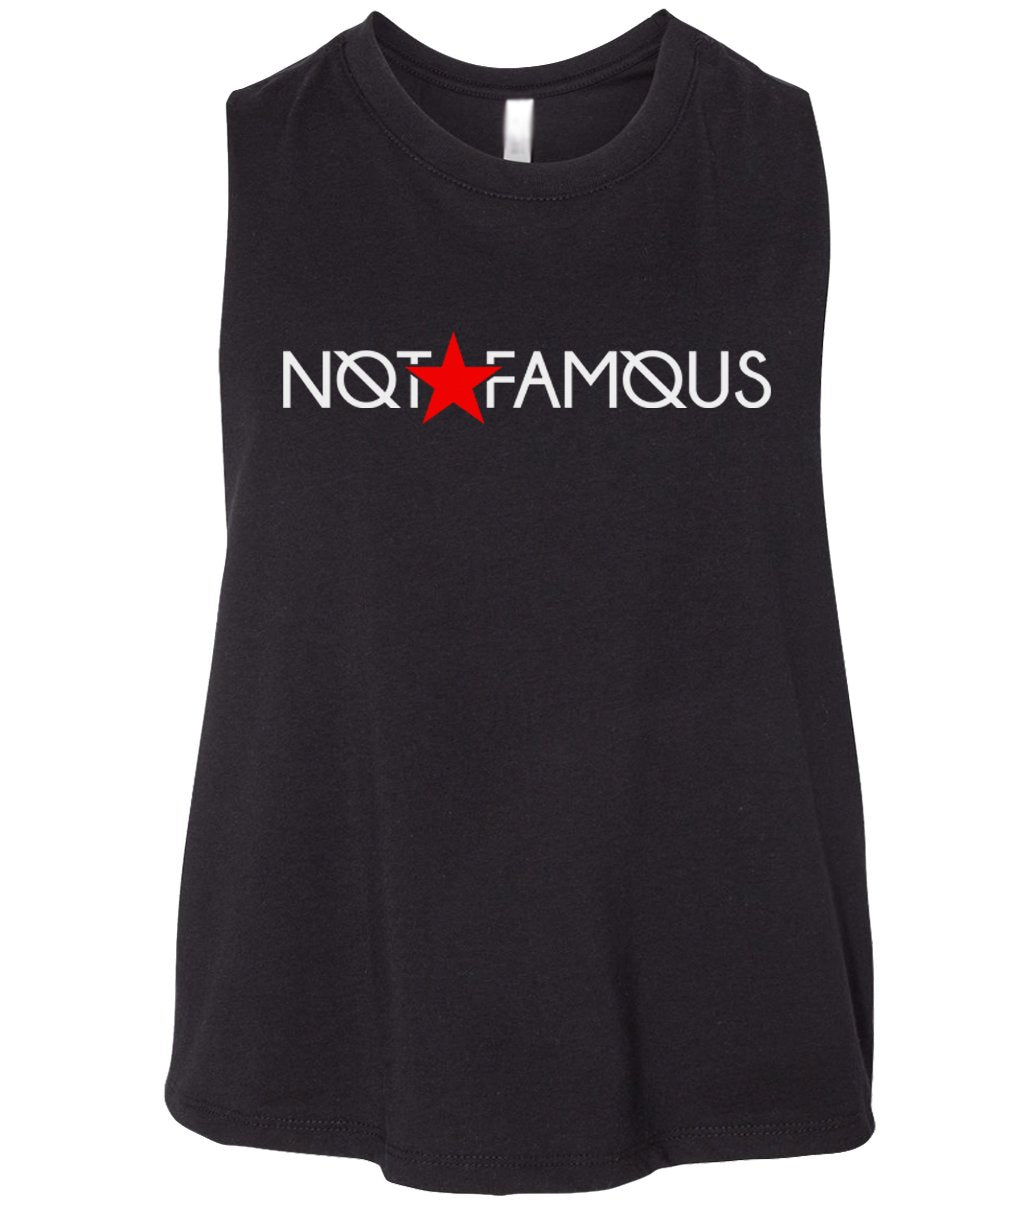 black not famous cropped tank top